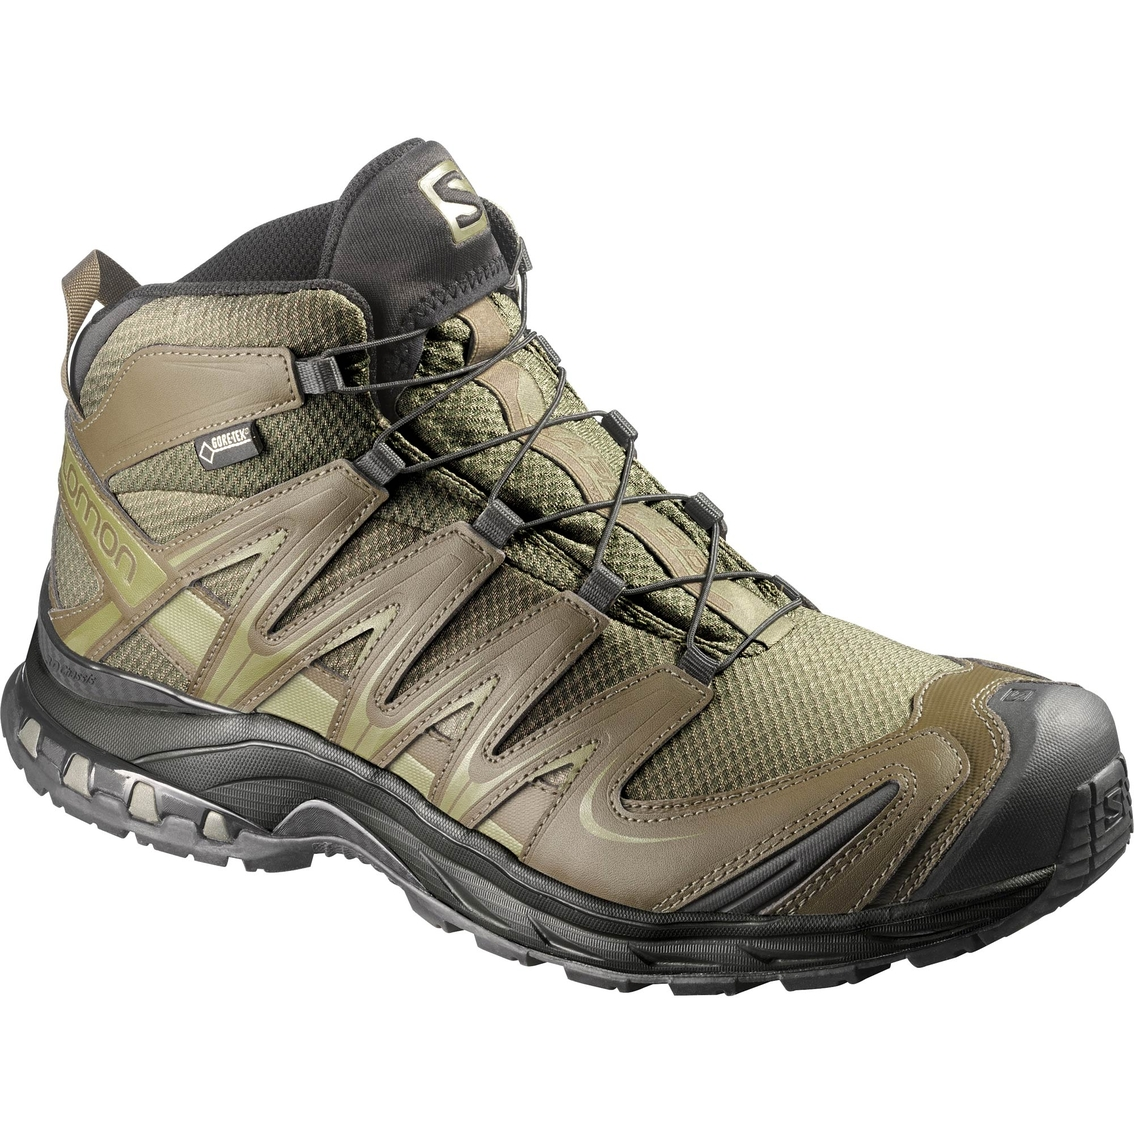 Salomon Xa Pro Mid Gtx Forces Assault Boots | Hiking & Trail